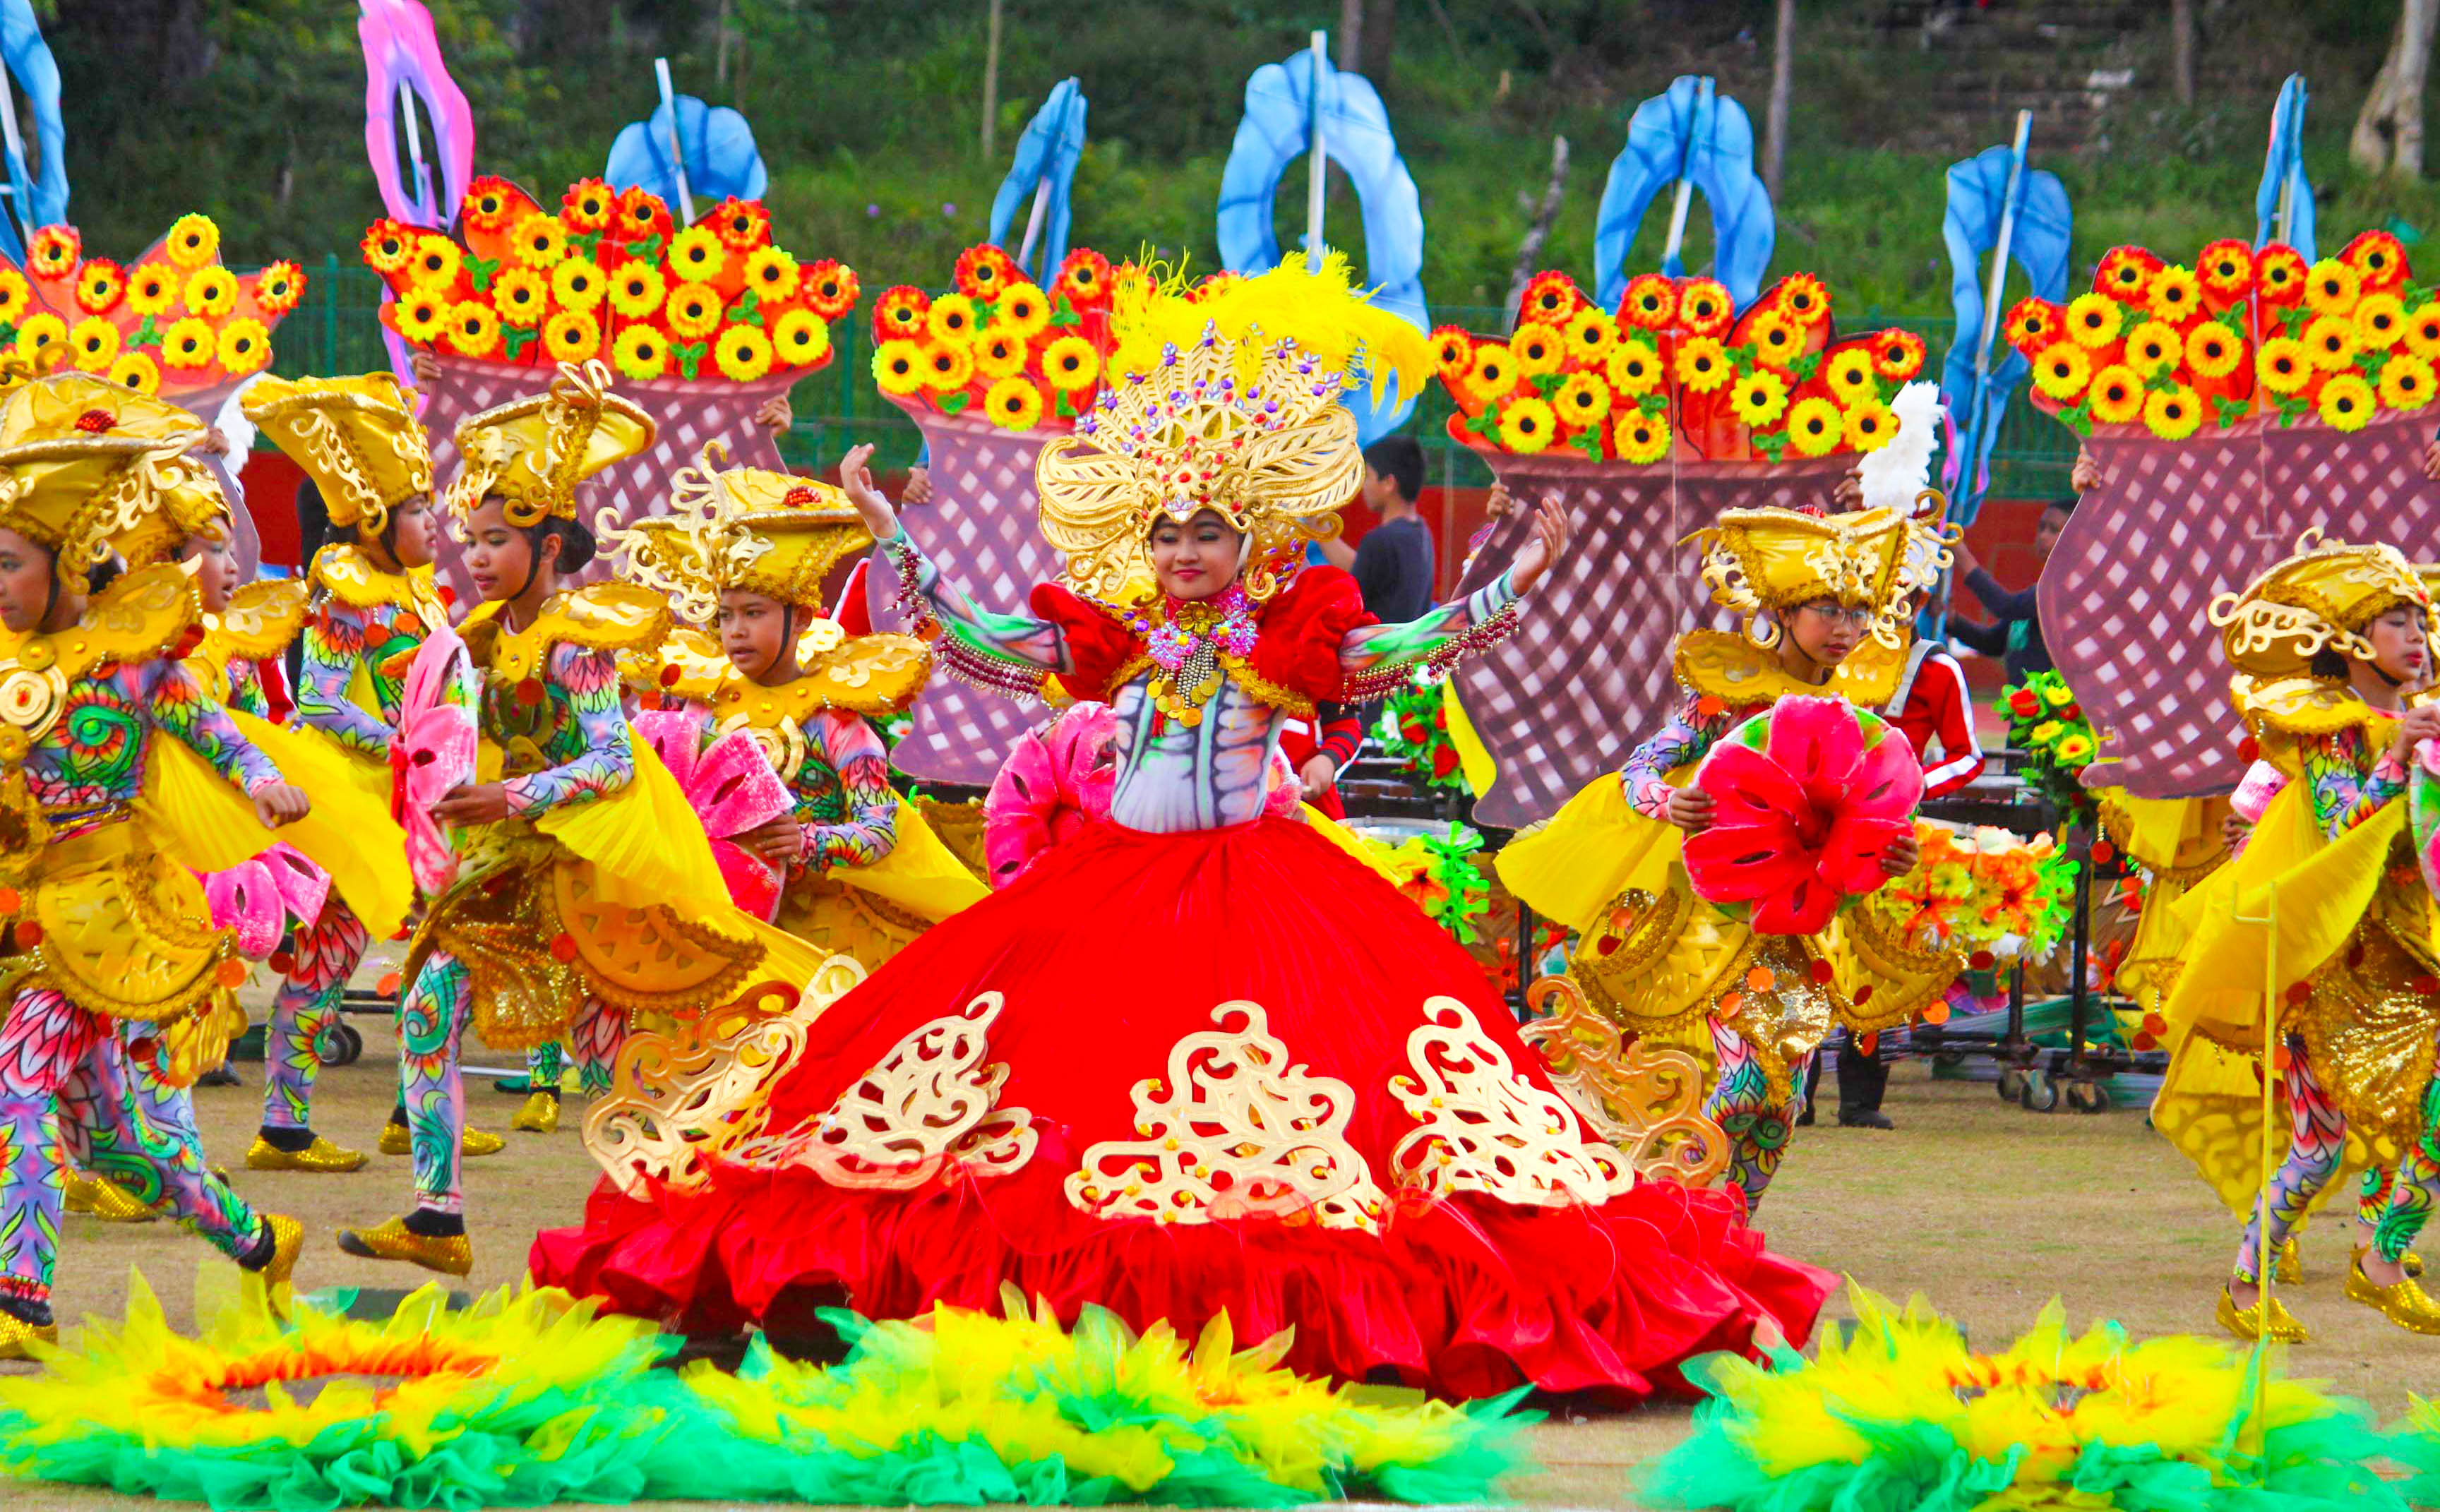 Children dancing in colorful costumes during a festival parade